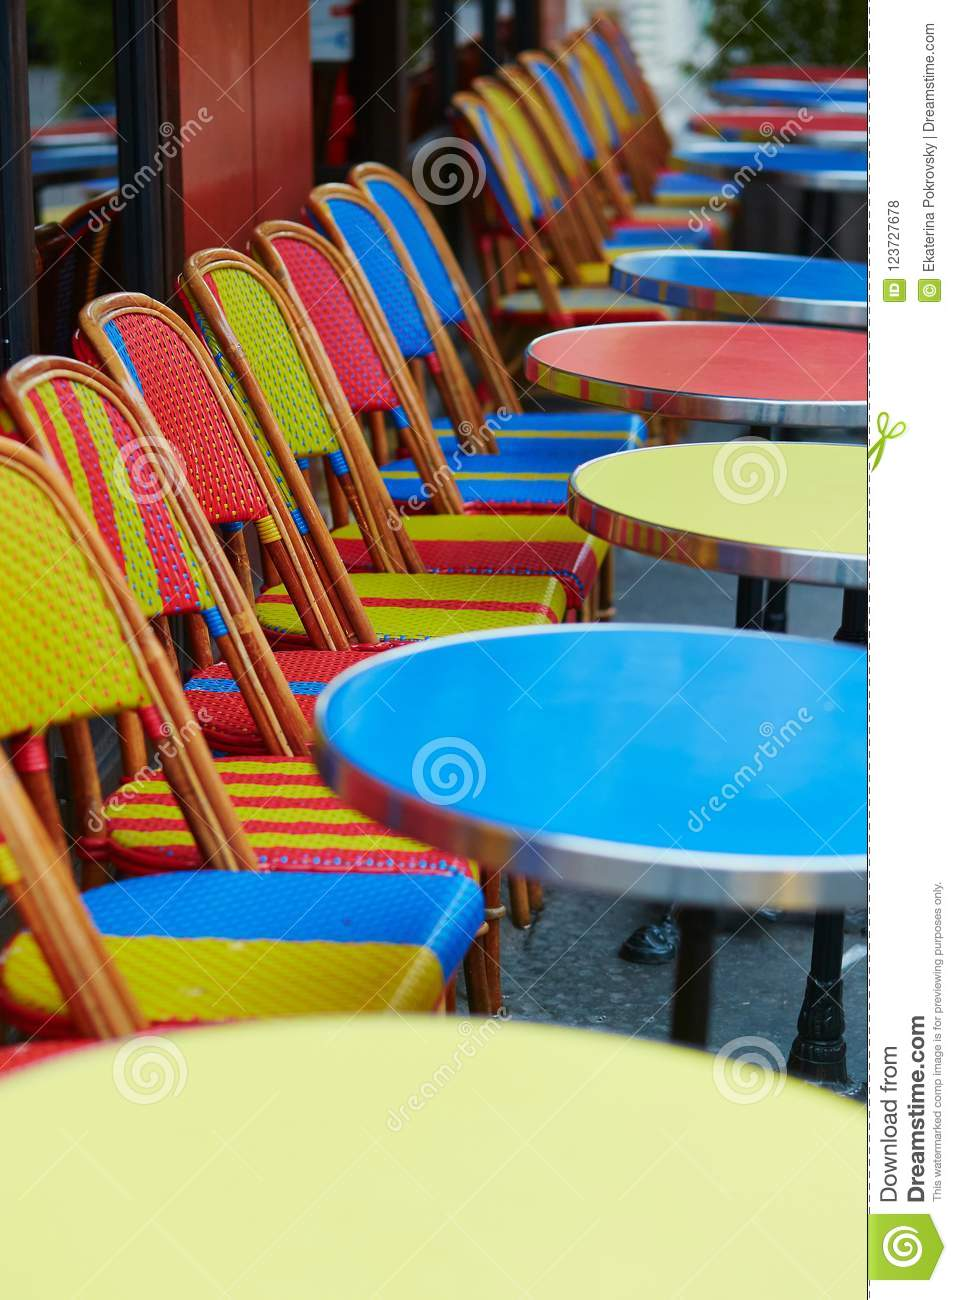 Colorful Tables And Chairs Of Outdoor Cafe In Paris Stock Photo Image Of City Table 123727678